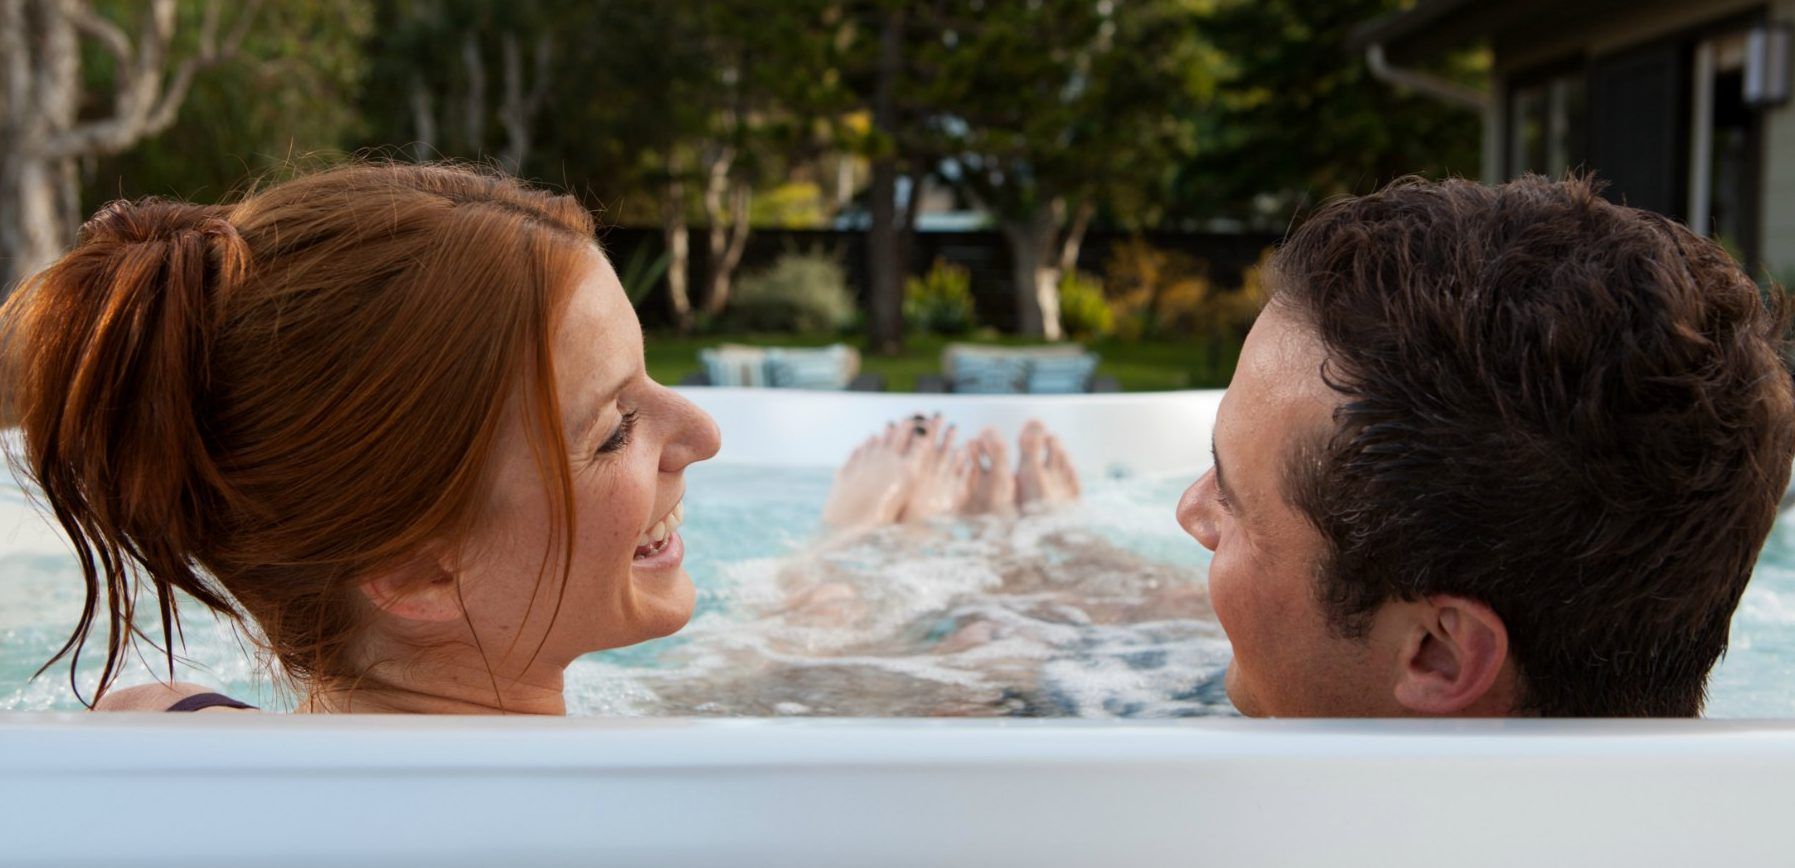 4 of the Best Times to Enjoy Your Hot Tub